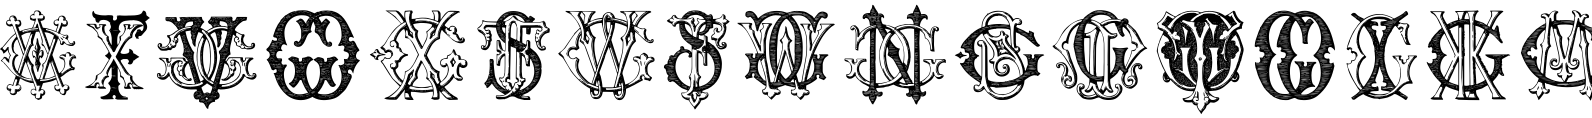 Intellecta Monograms FRGW Font